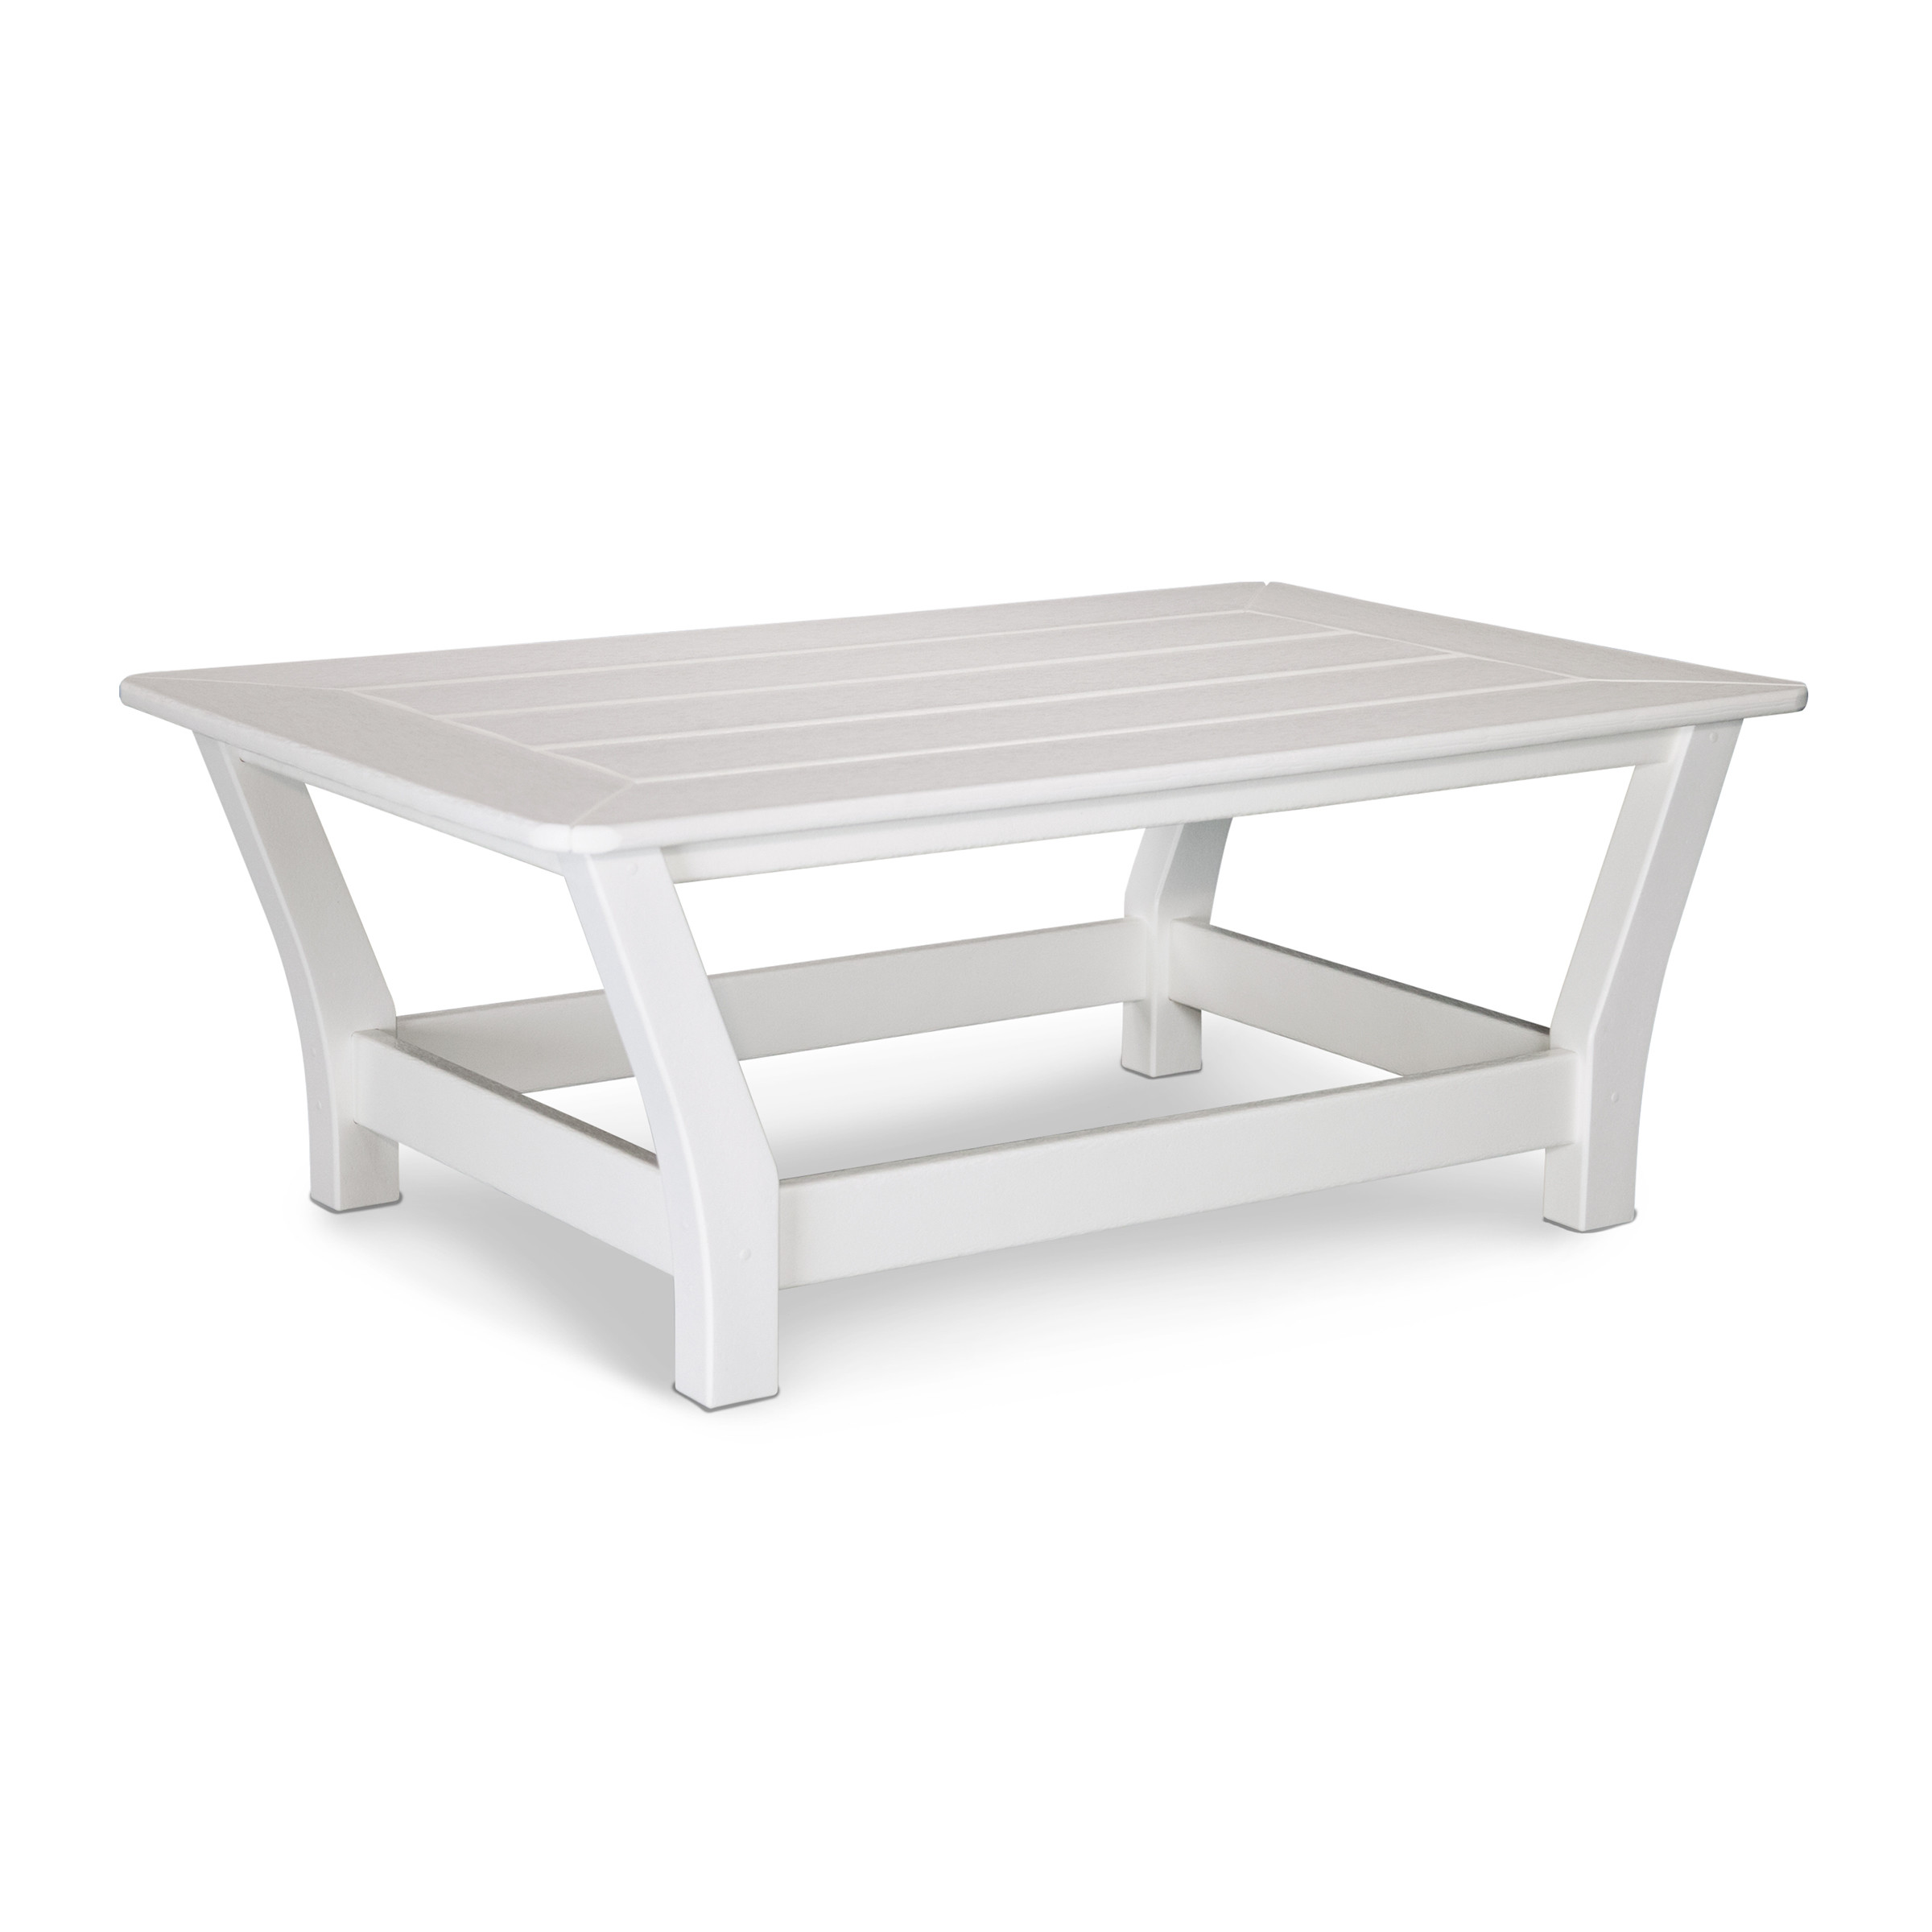 Polywood Harbour Slat Coffee Table Harbour Deep Seating Collection Polywood Outdoor